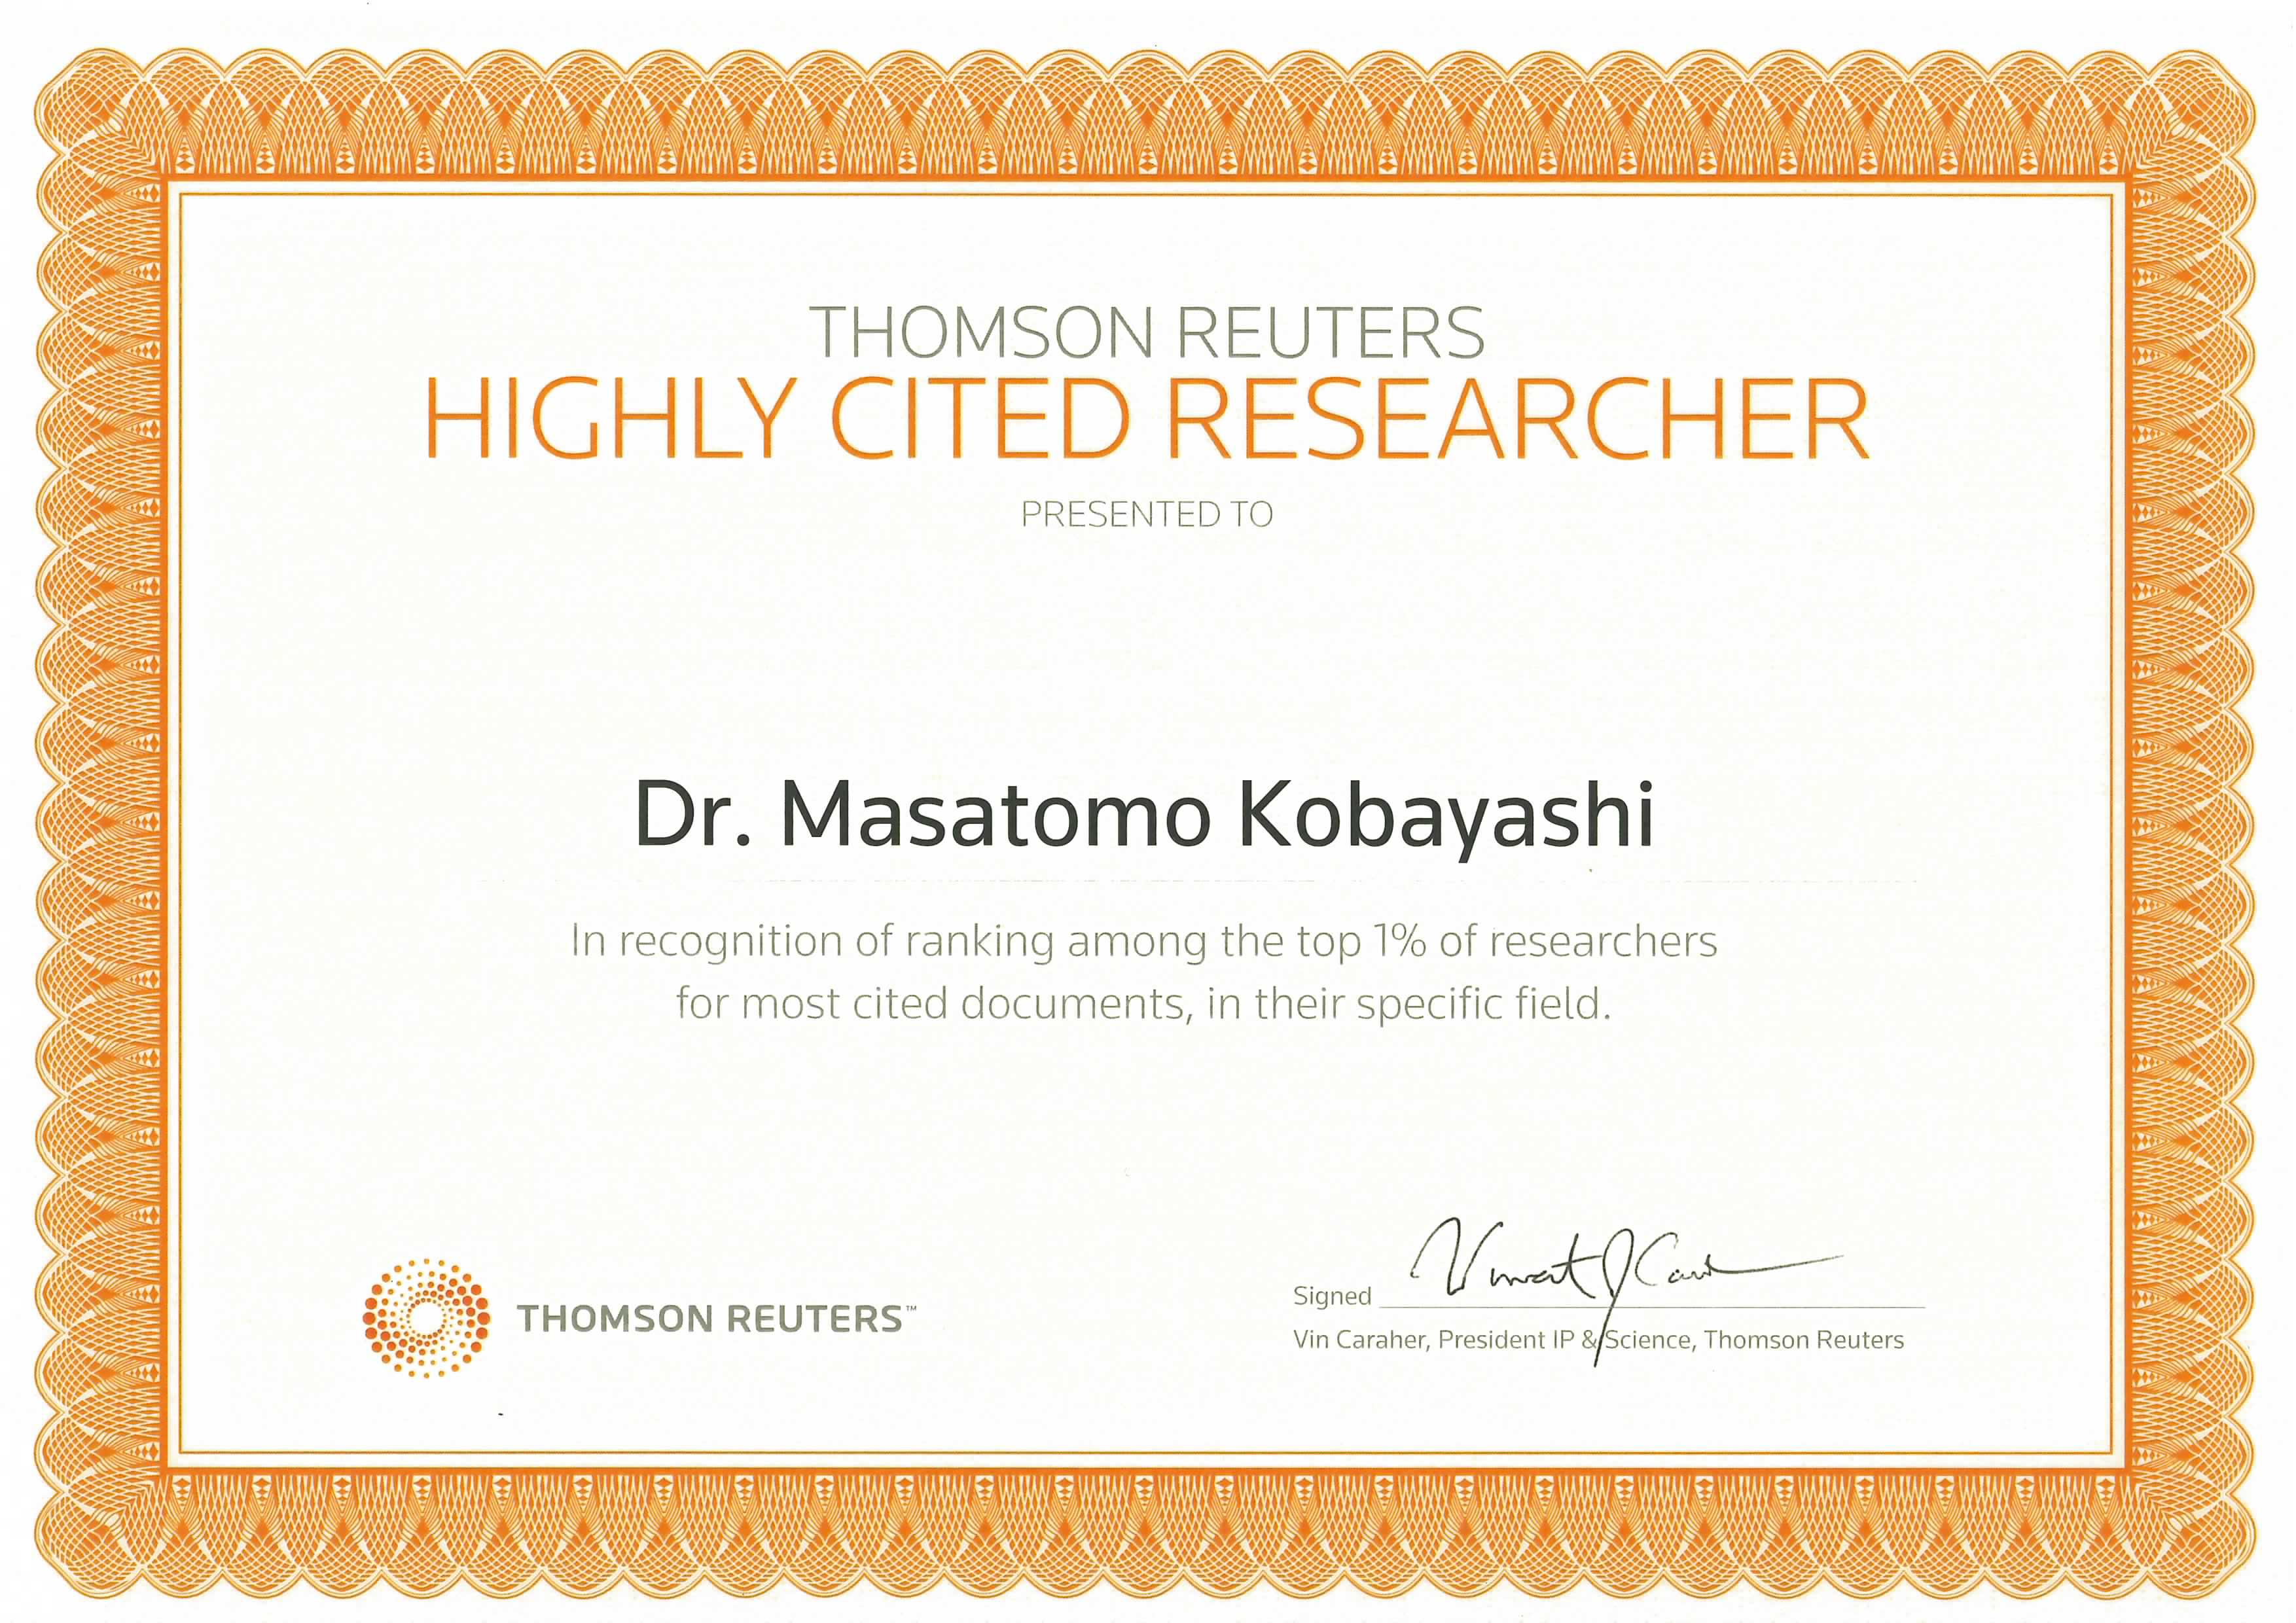 Dr. Masatomo Kobayashi has been selected for Highly Cited Researchers 2015